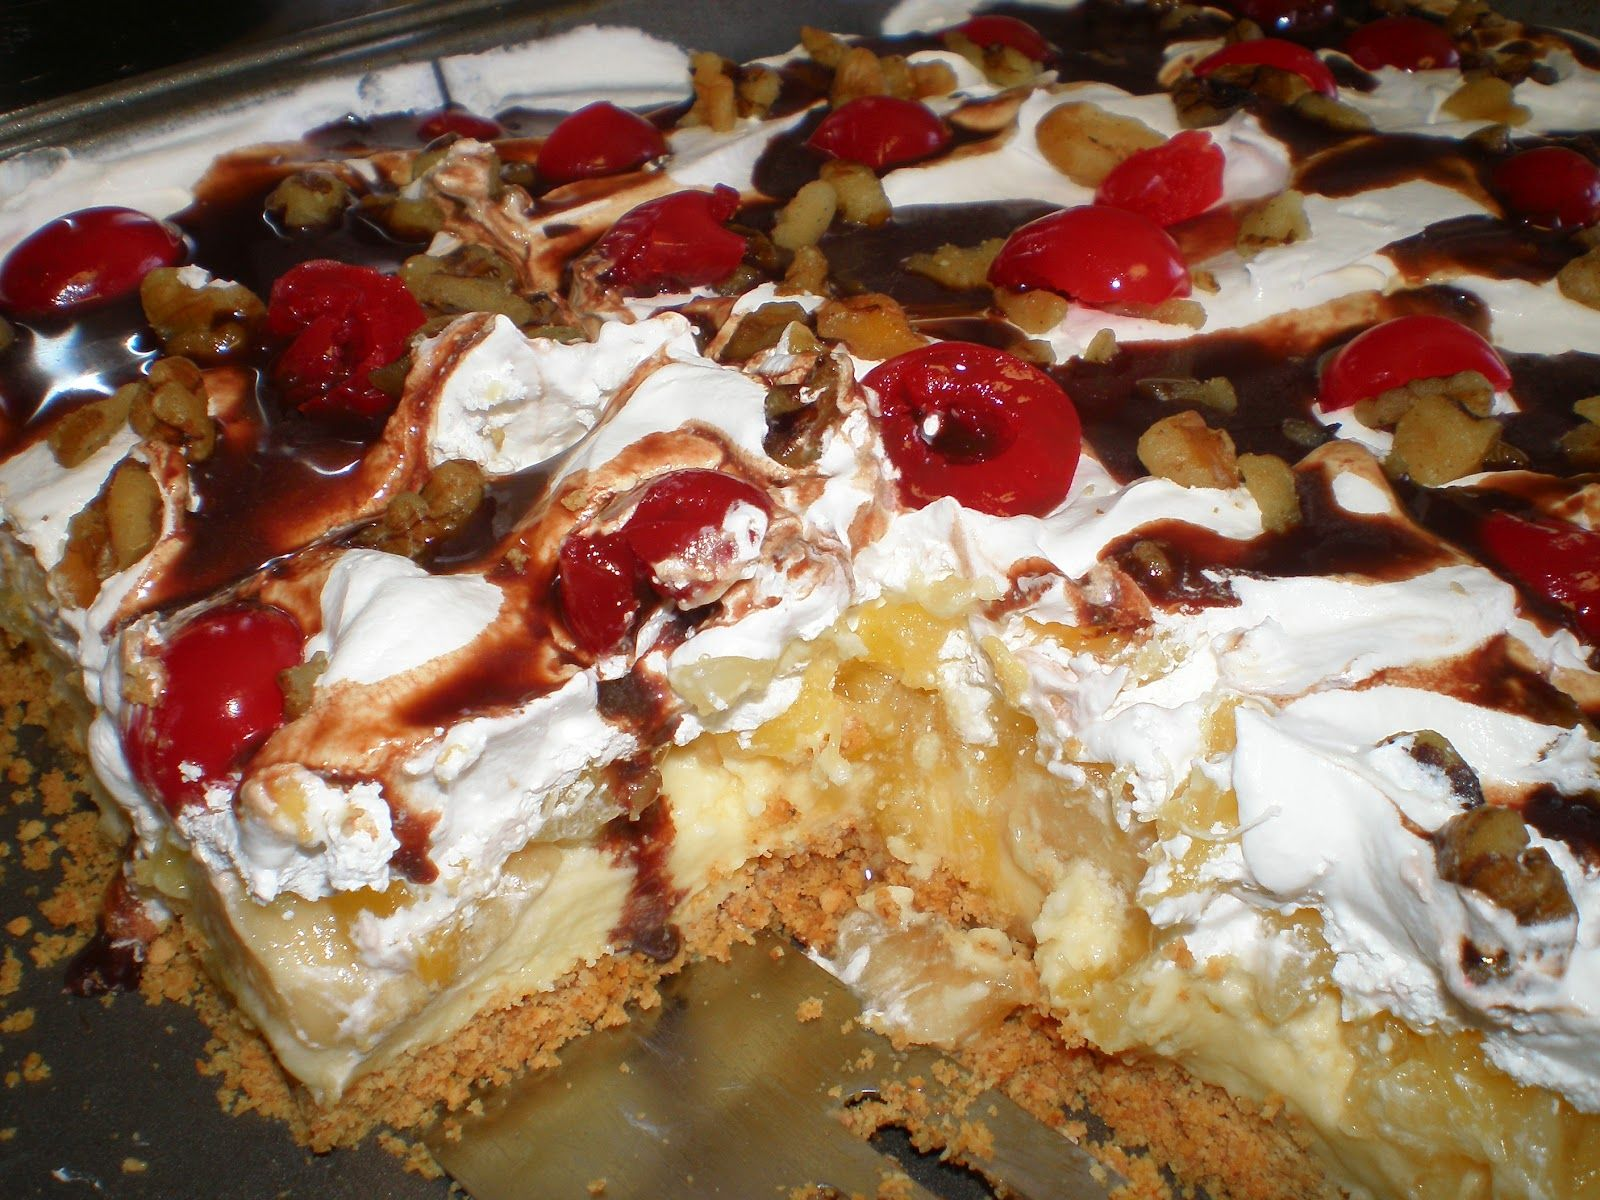 Yummy Layered Cake Recipes: Banana Split Dessert With Pudding